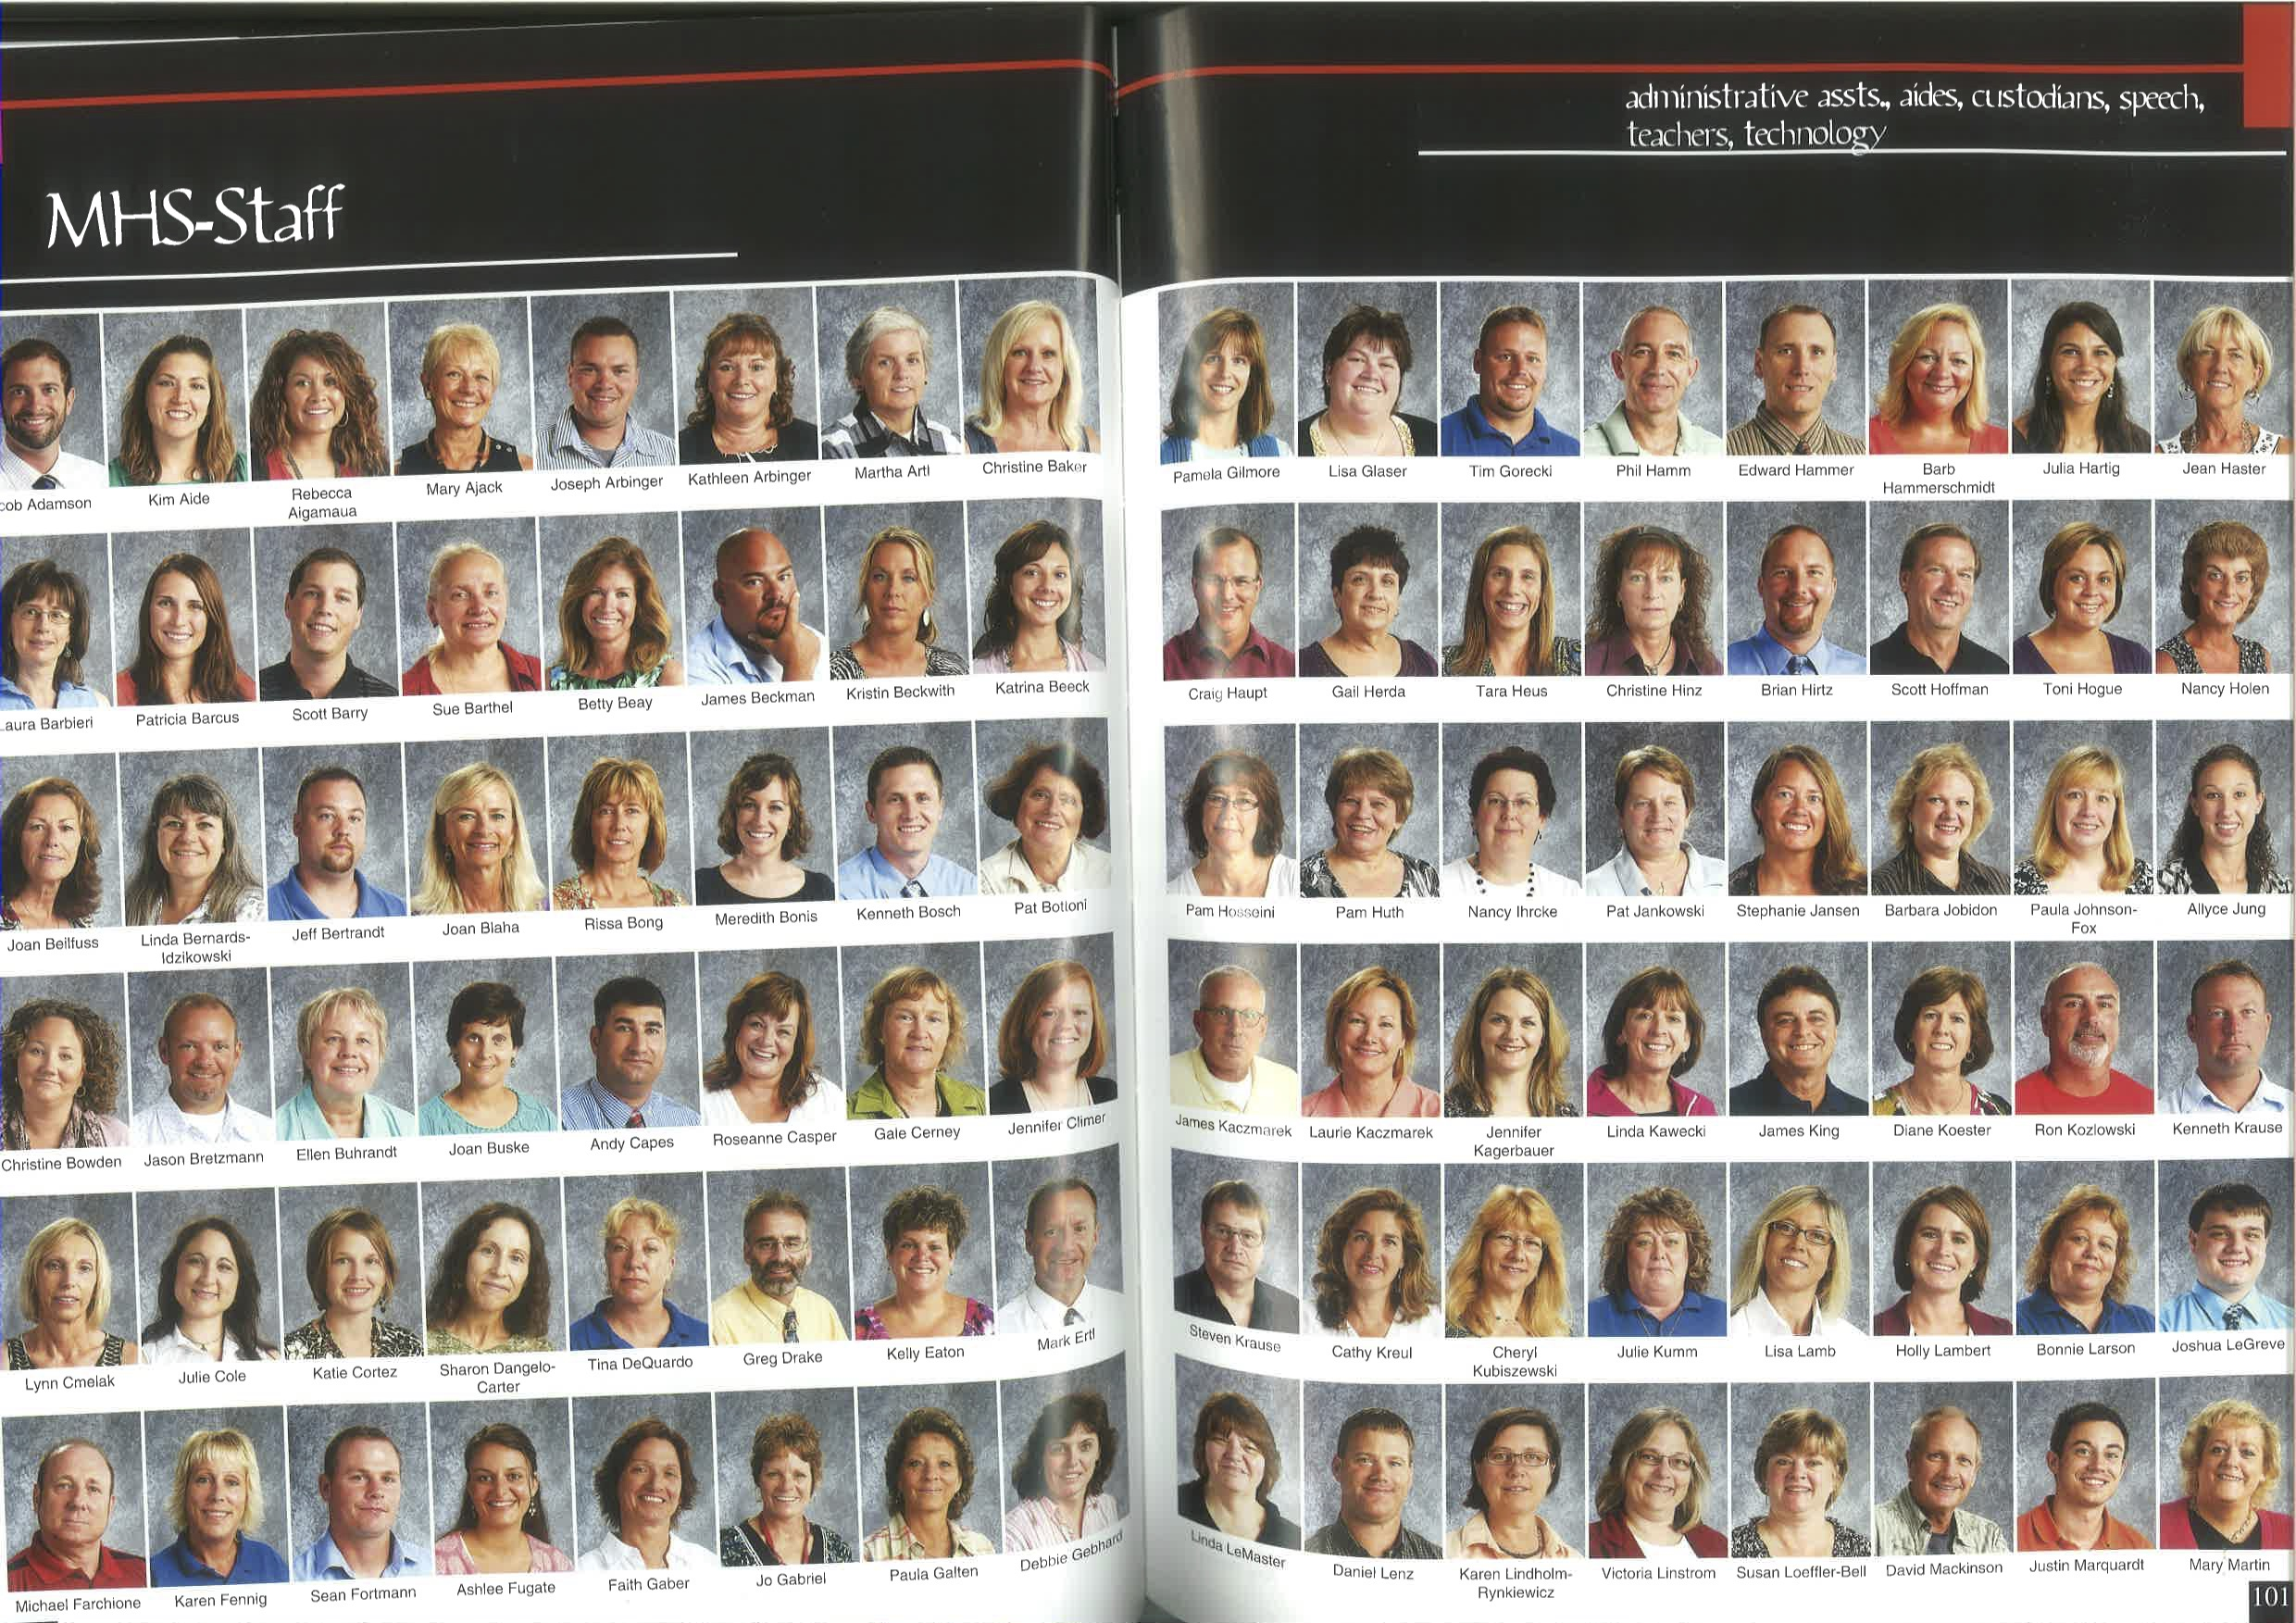 2011_Yearbook_51.jpg